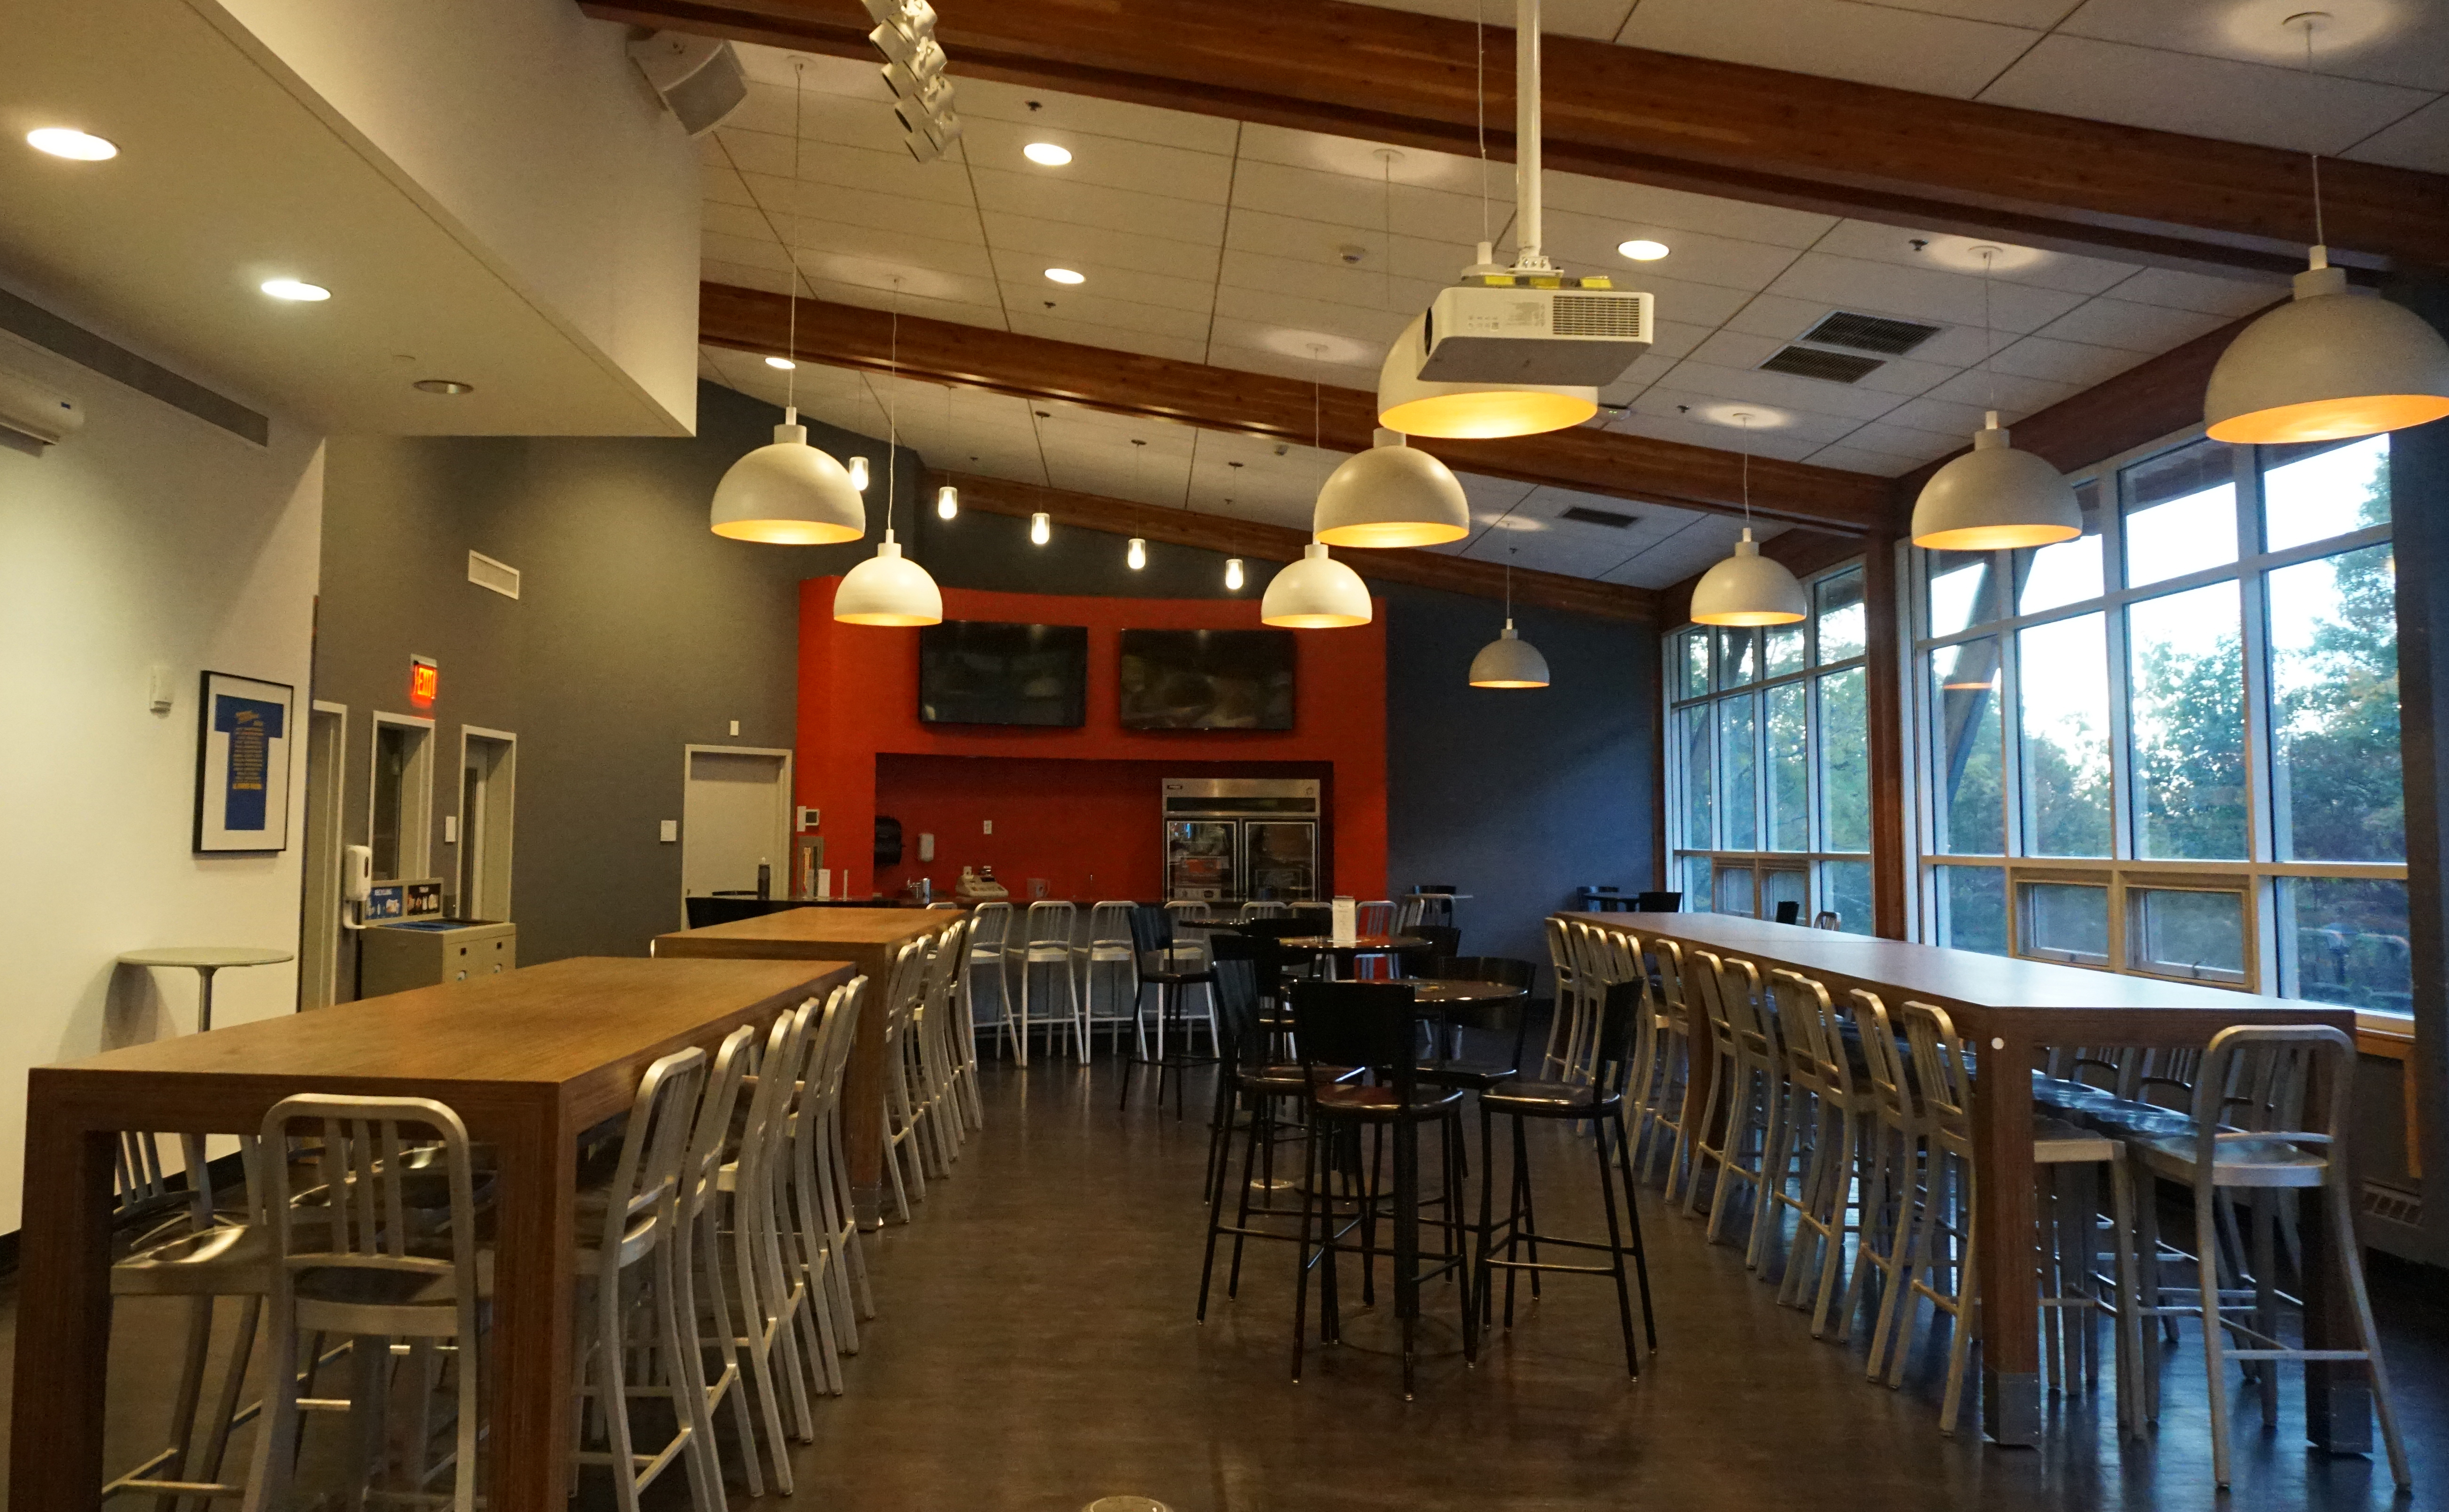 Dining hall in the student activities center at Bentley University